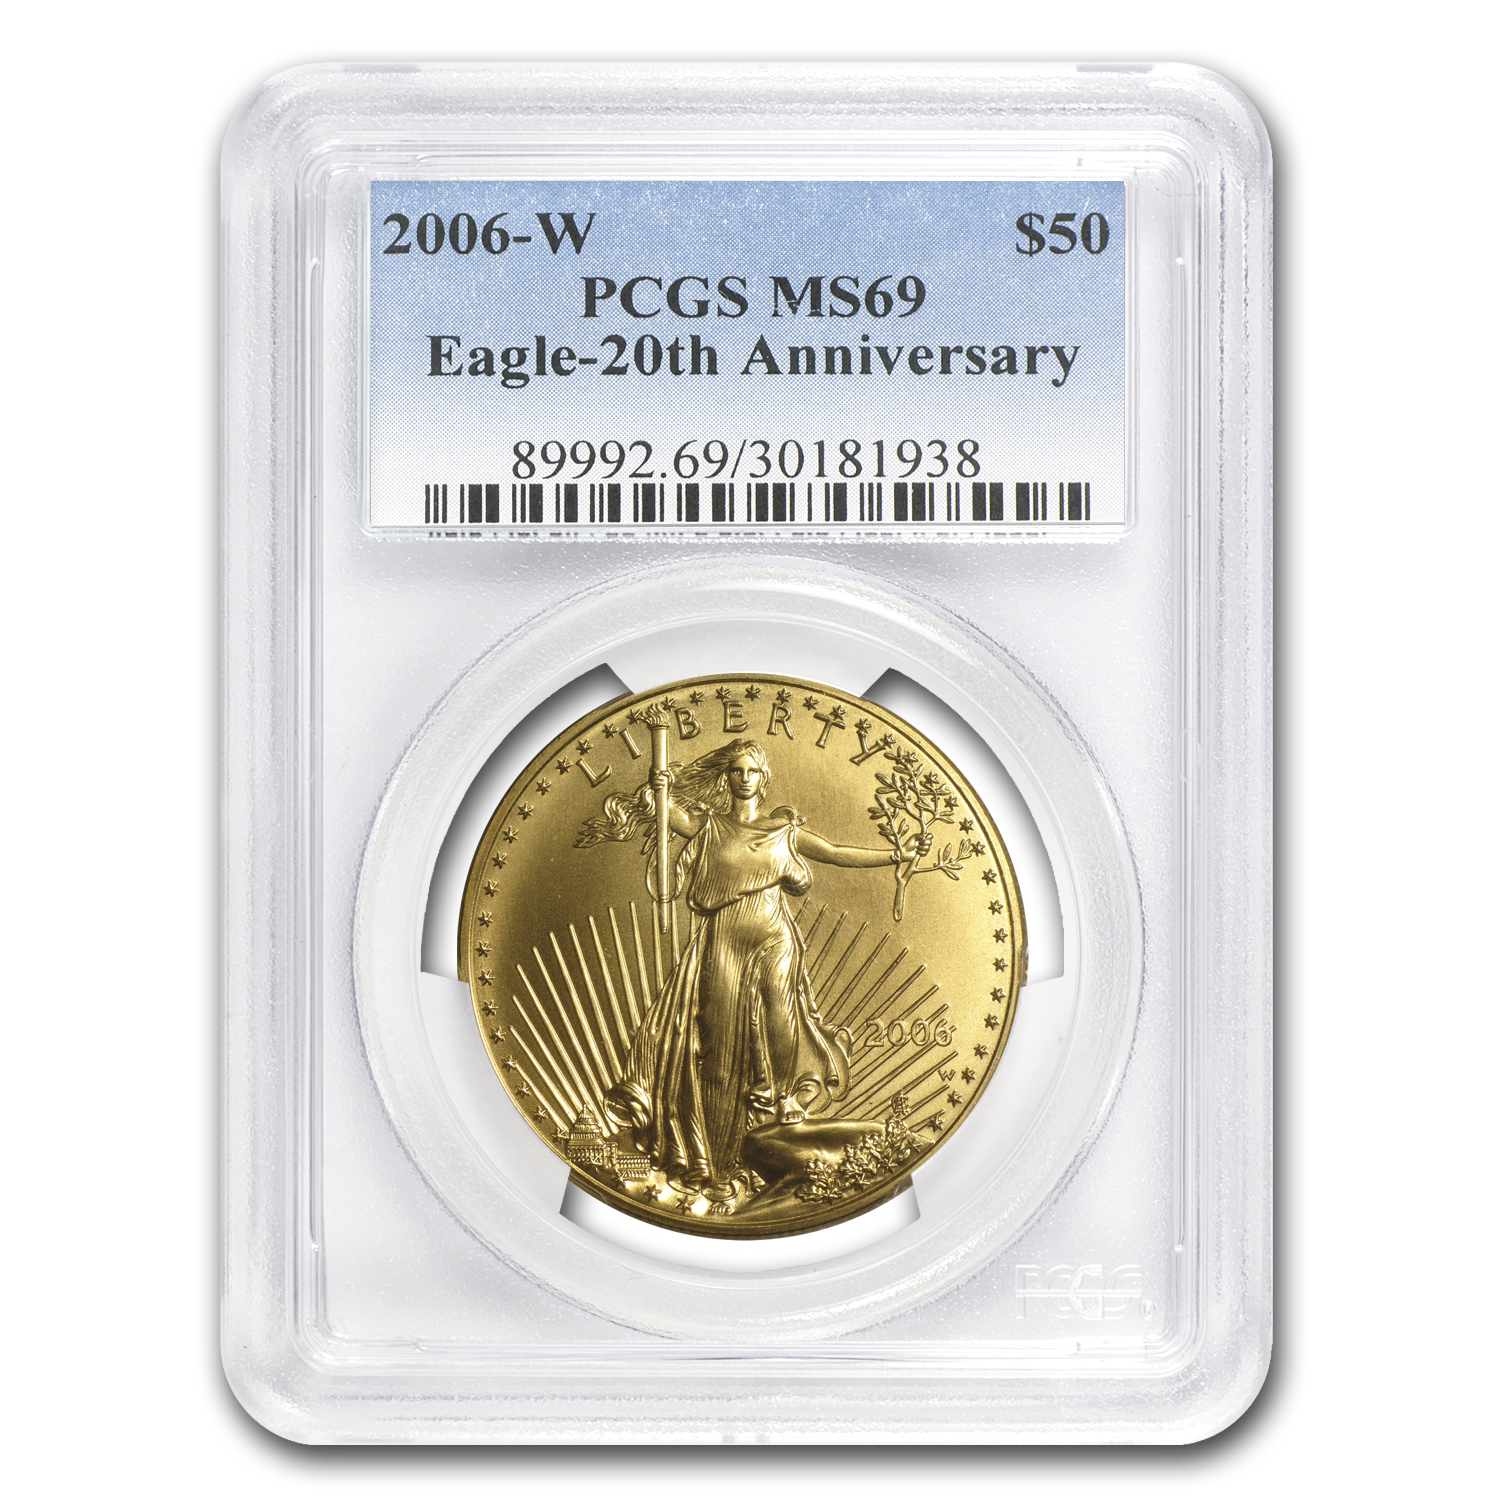 2006-W 1 oz Burnished Gold American Eagle MS-69 PCGS